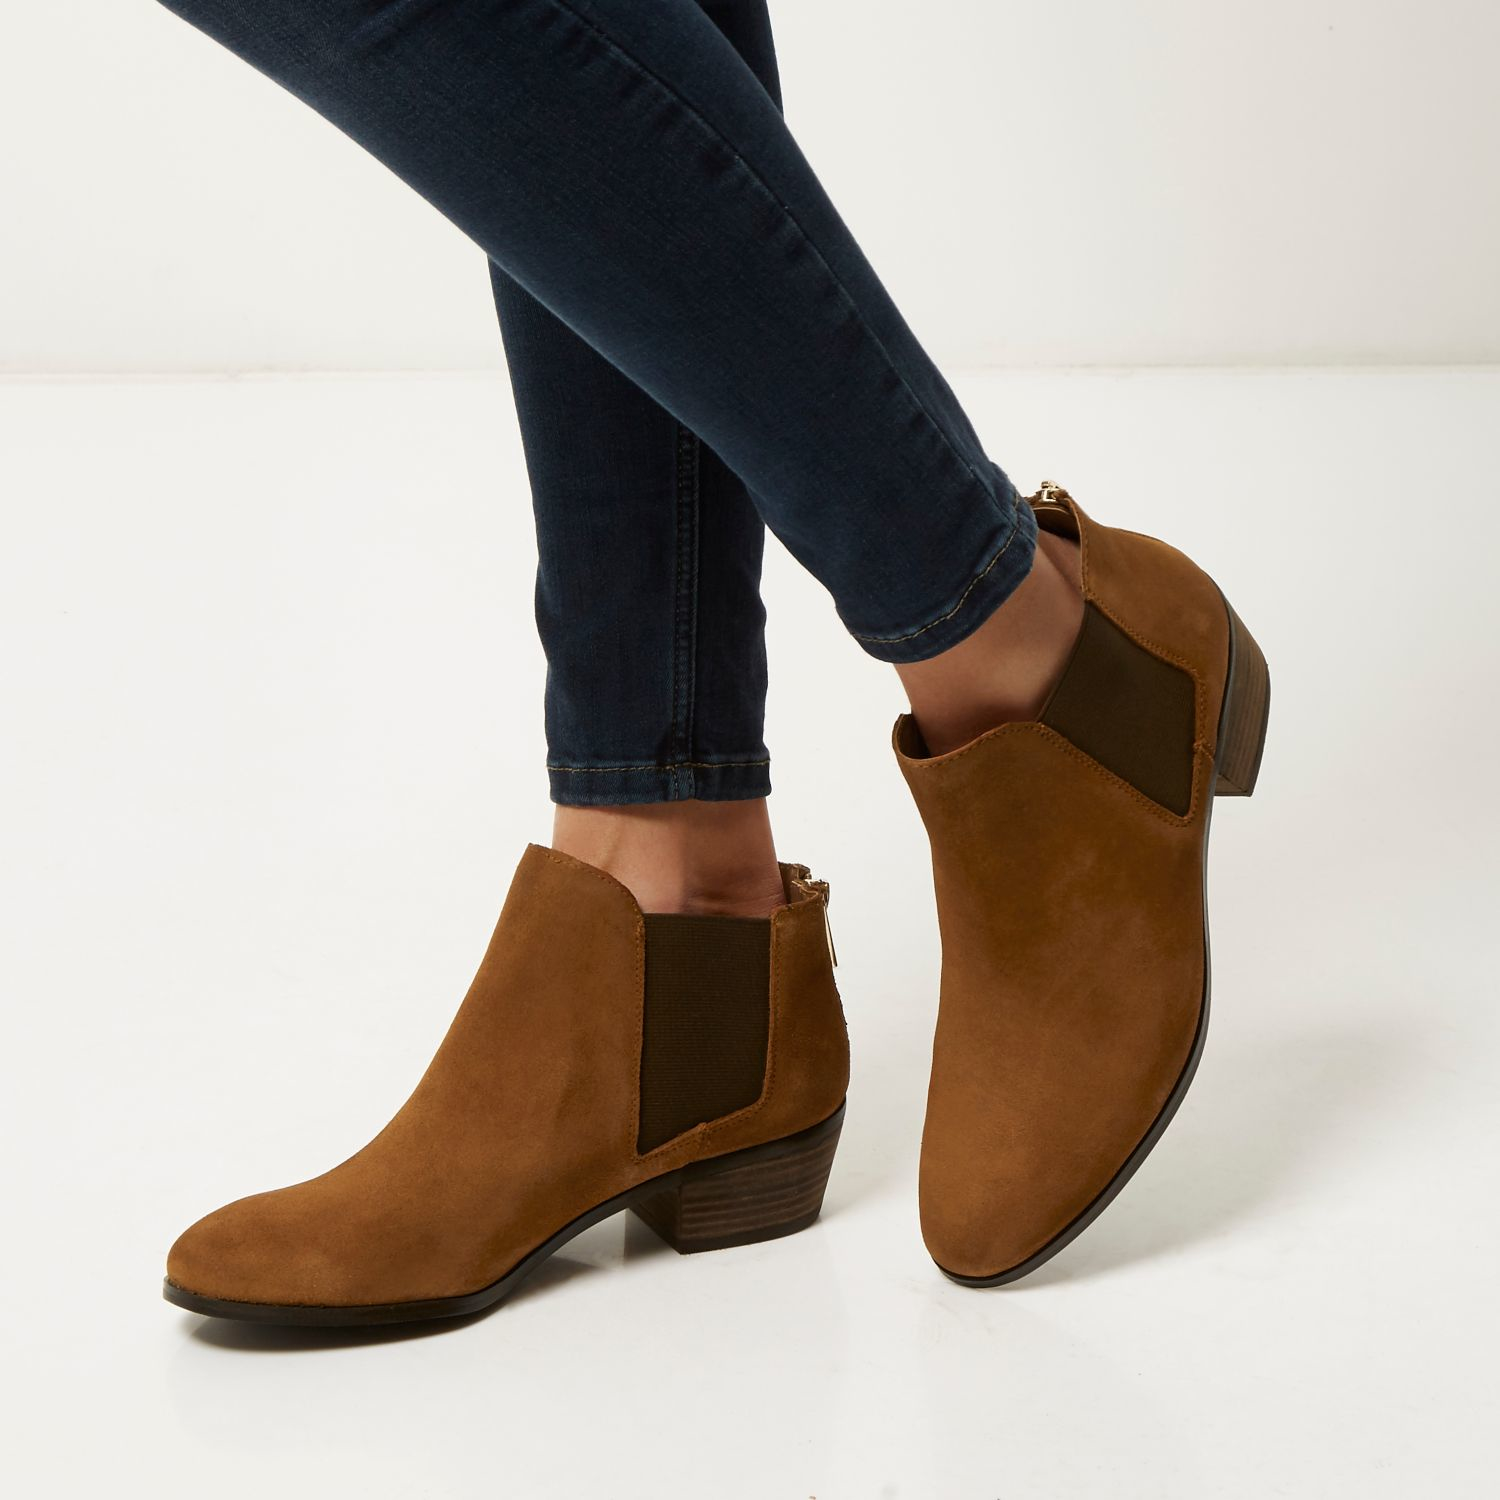 Trendy, new styles of Brown Ankle Boots have arrived at Macy's. Discover the latest looks for Womens Brown Ankle Boots, Ladies Brown Ankles Boots and more.